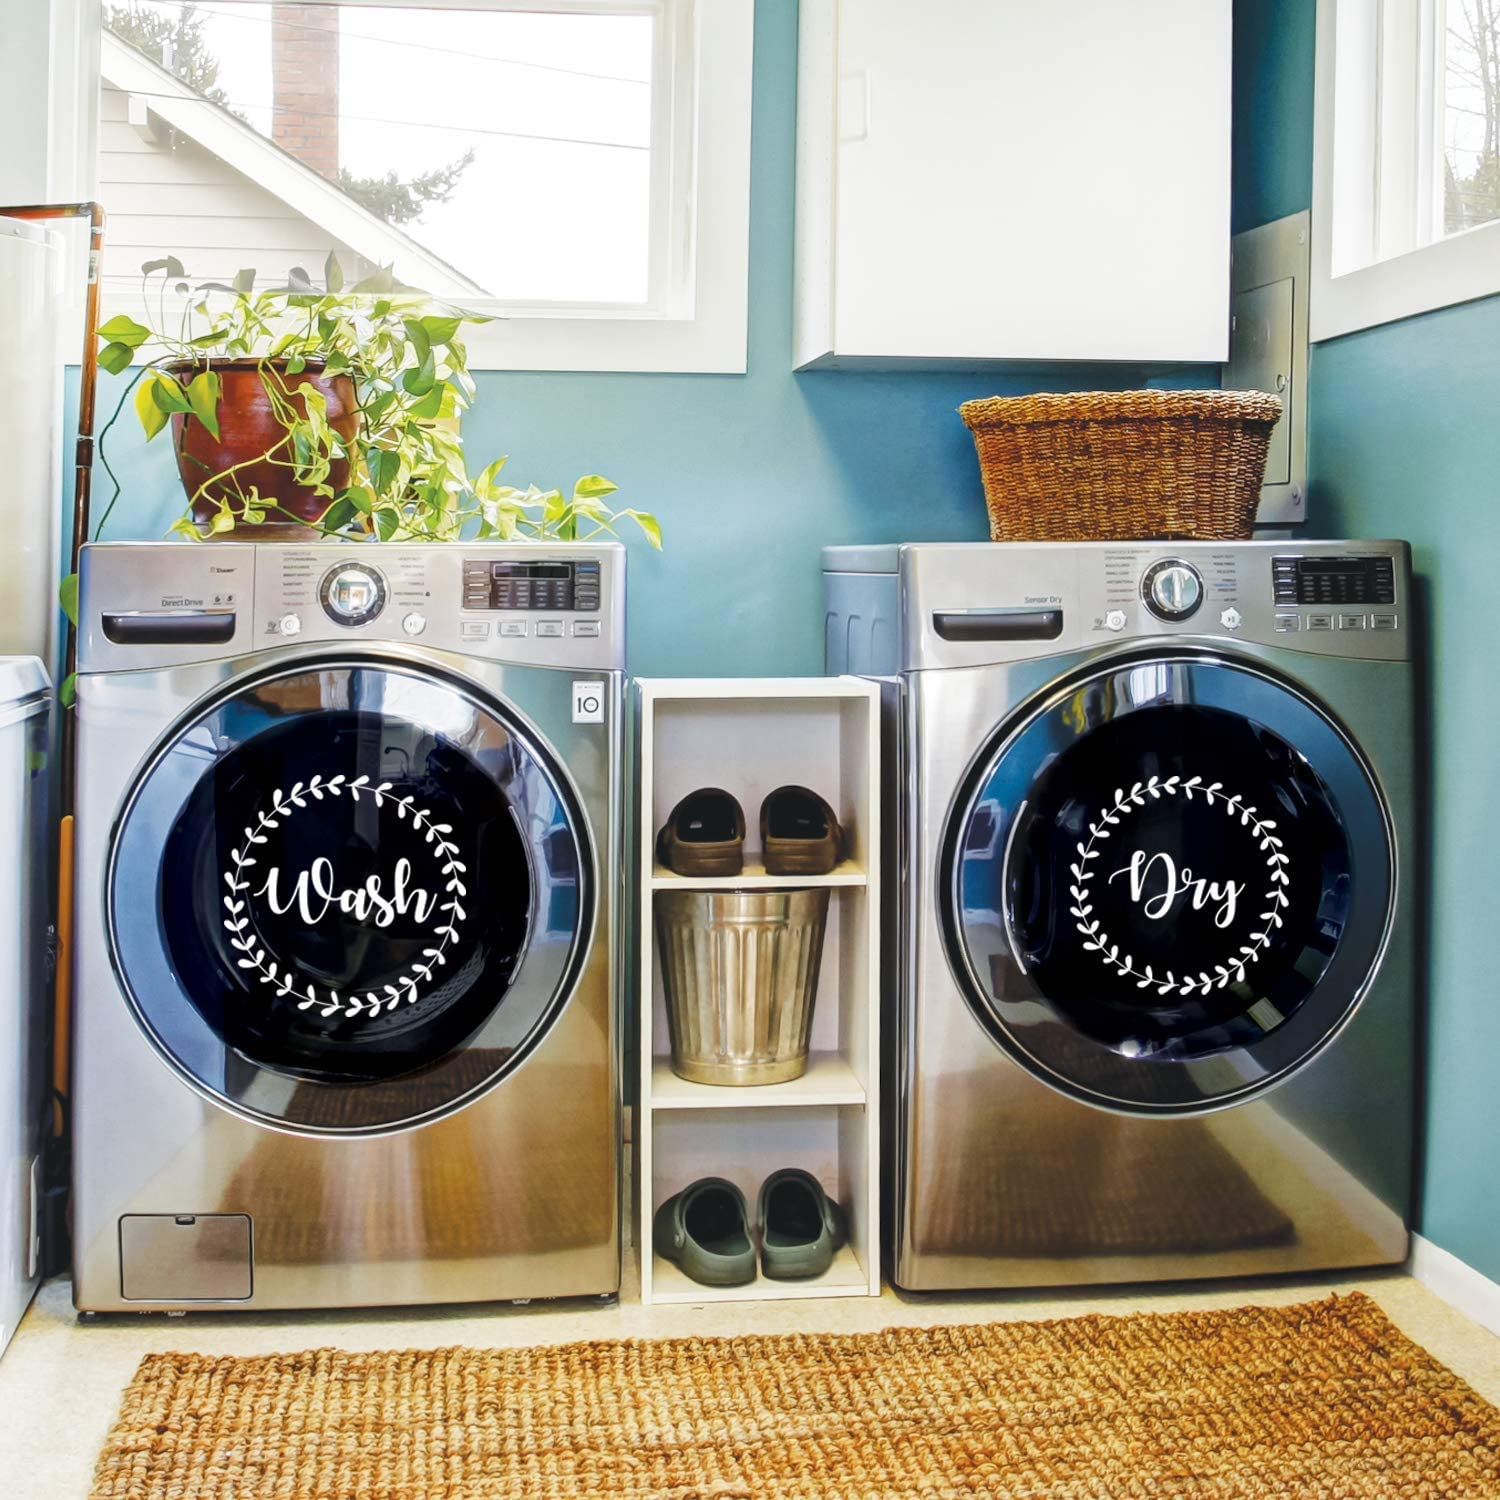 """Vinyl Wall Art Decal - Wash Dry - 15"""" x 15"""" Each - Modern Trendy Cute Washer Quote for Home Apartment Washing Machine Dryer Laundry Room Closet Chores Indoor Outdoor Decoration (White)"""